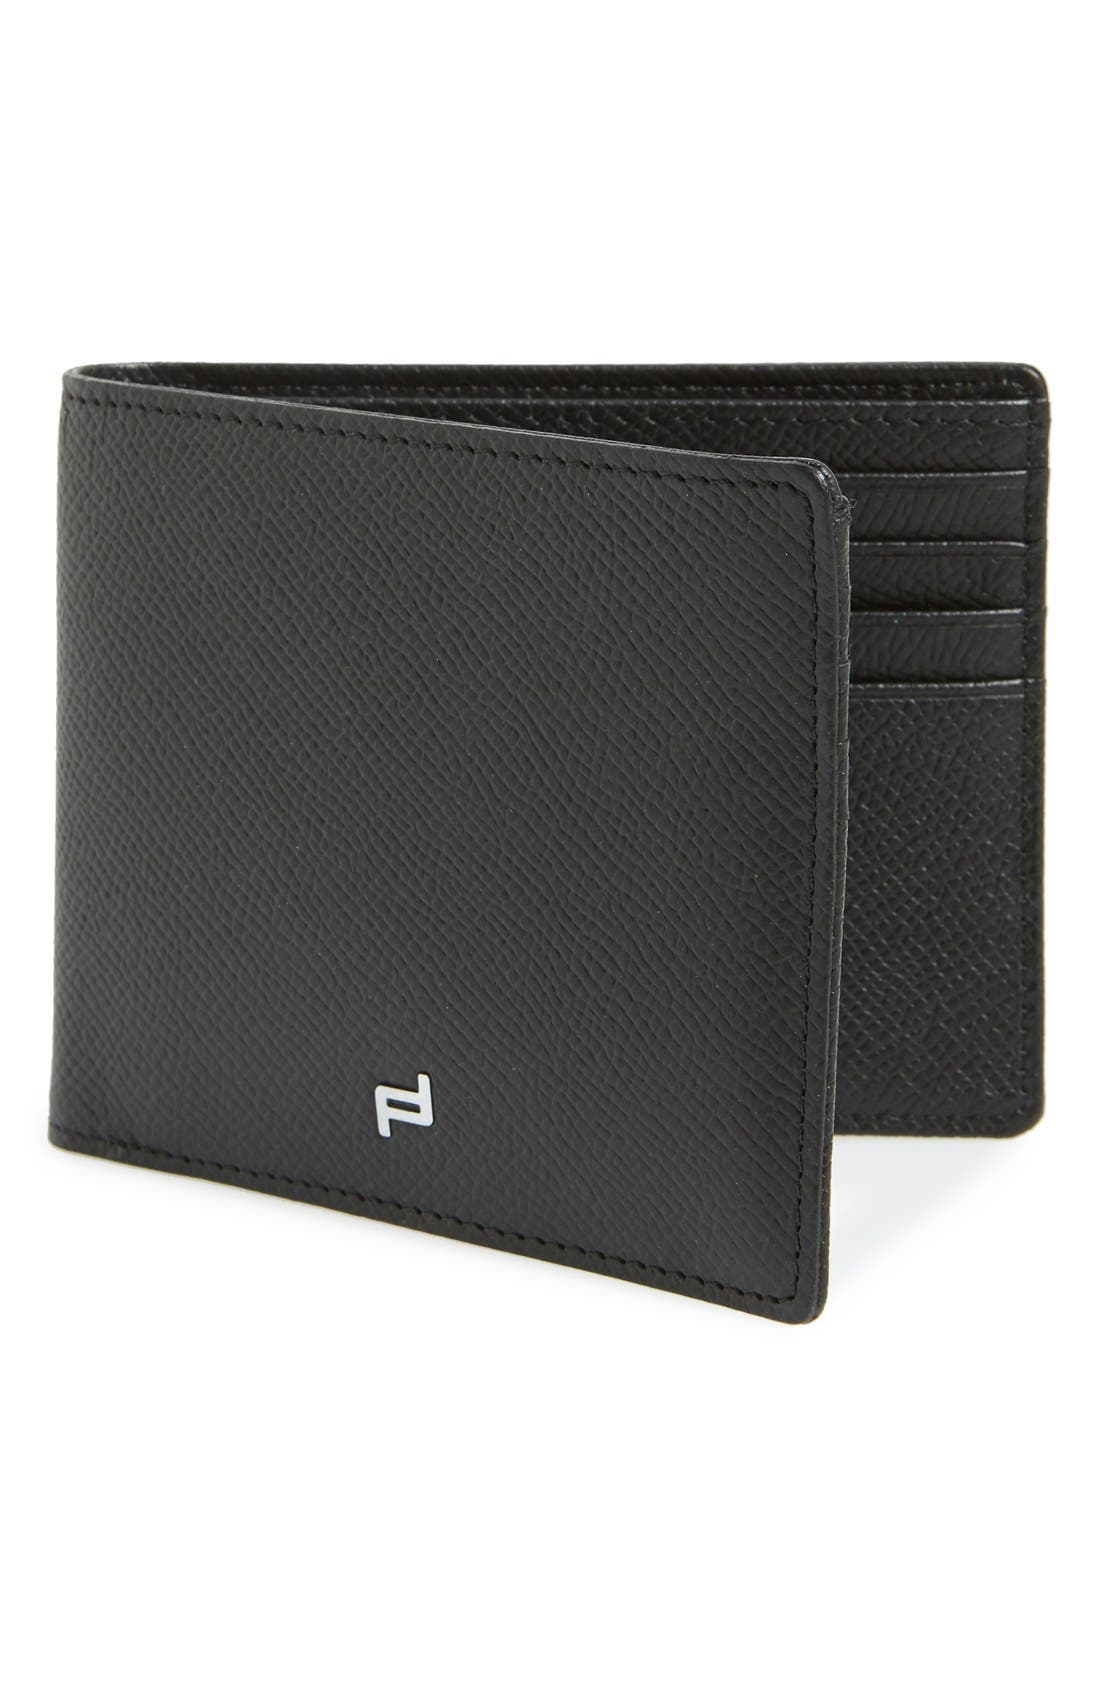 'FC 3.0'' Leather Bifold Wallet,                             Main thumbnail 1, color,                             001